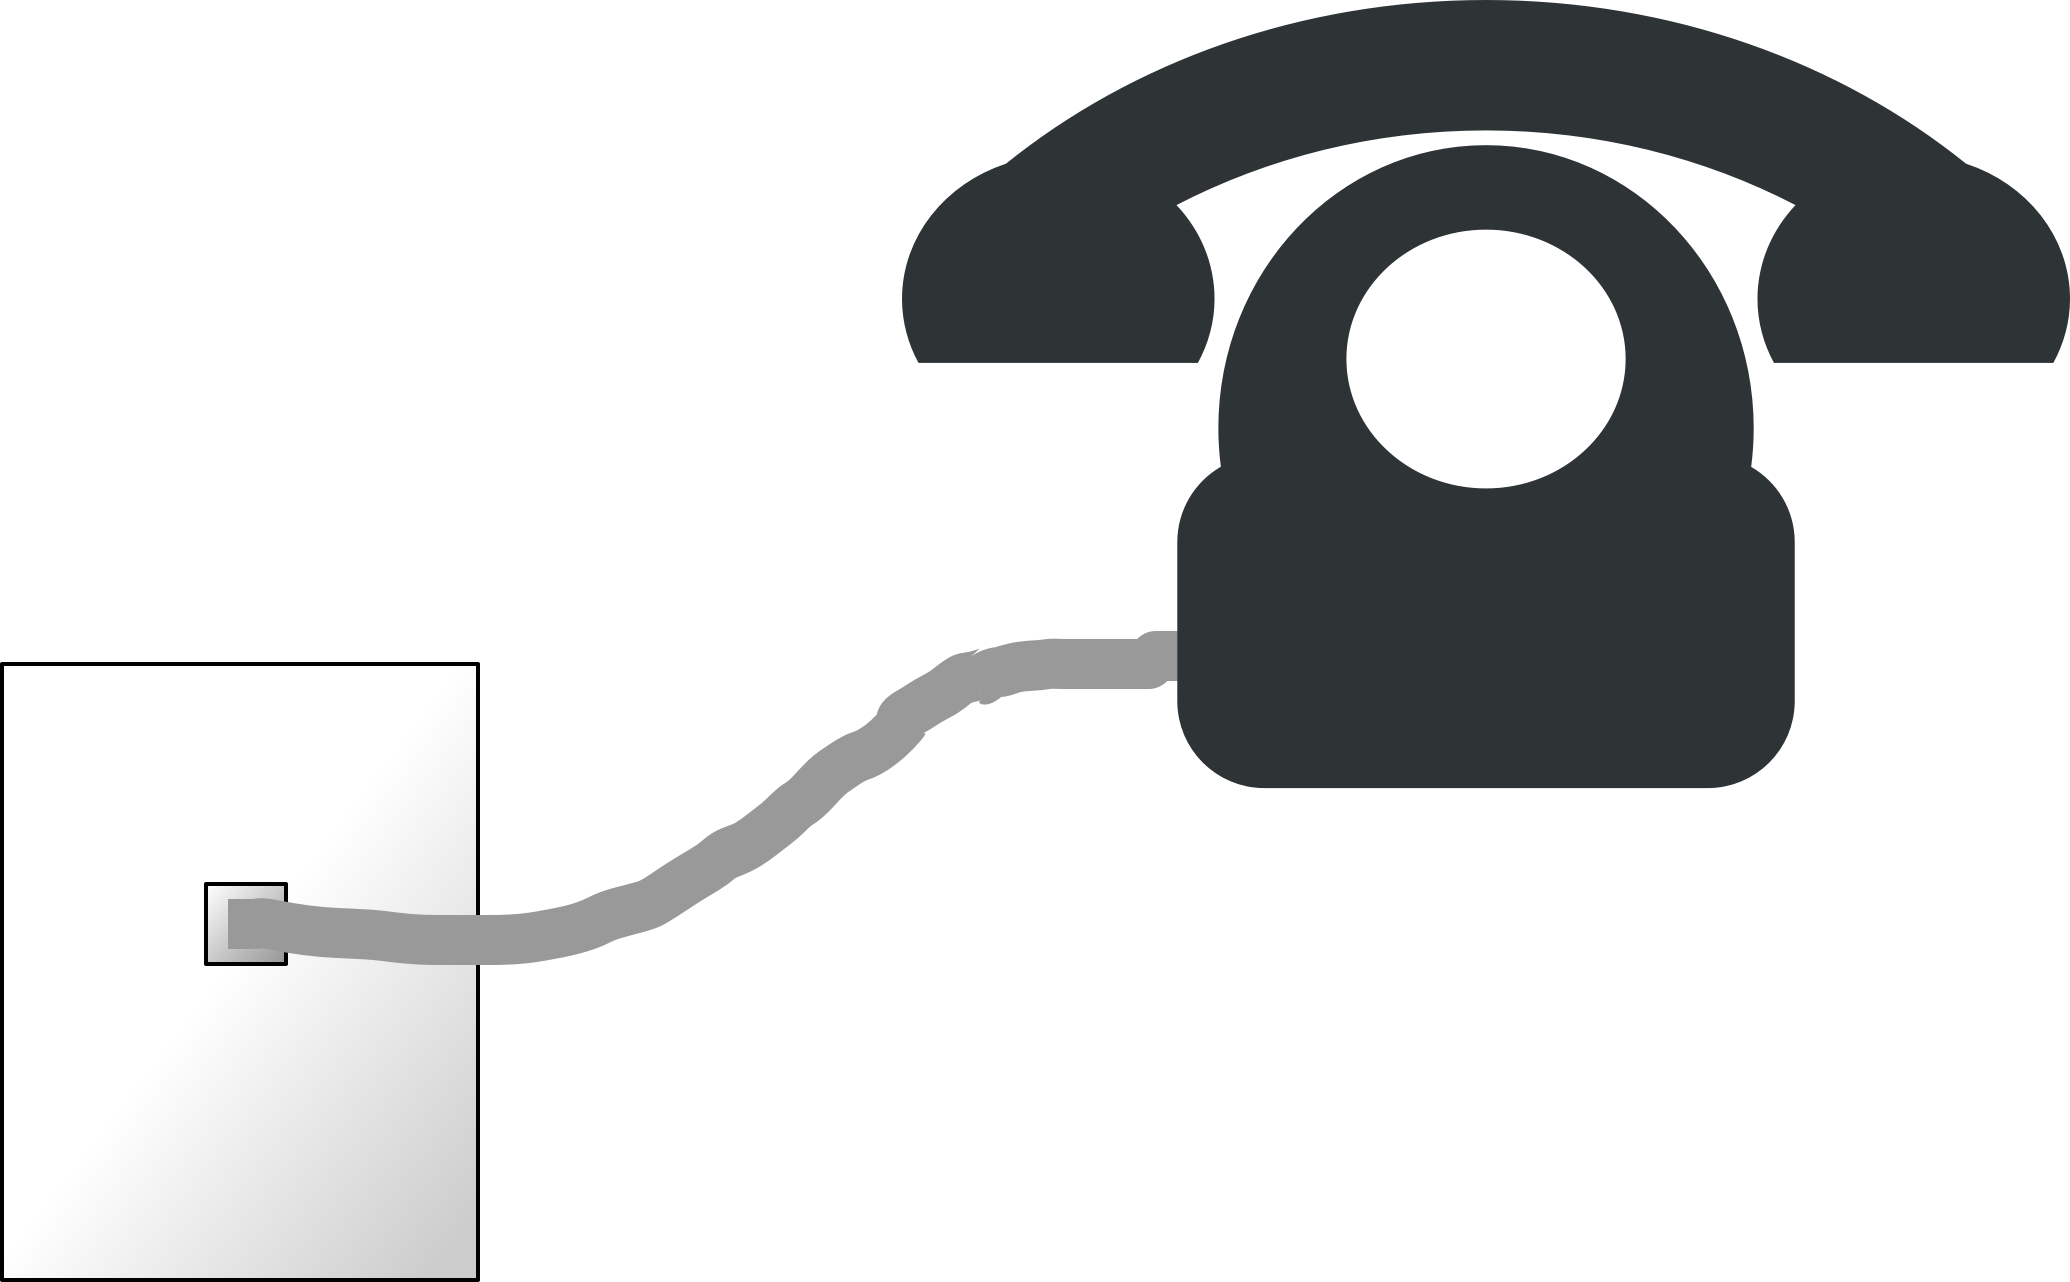 Lines clipart telephone wire On clipart Phone telephone lines